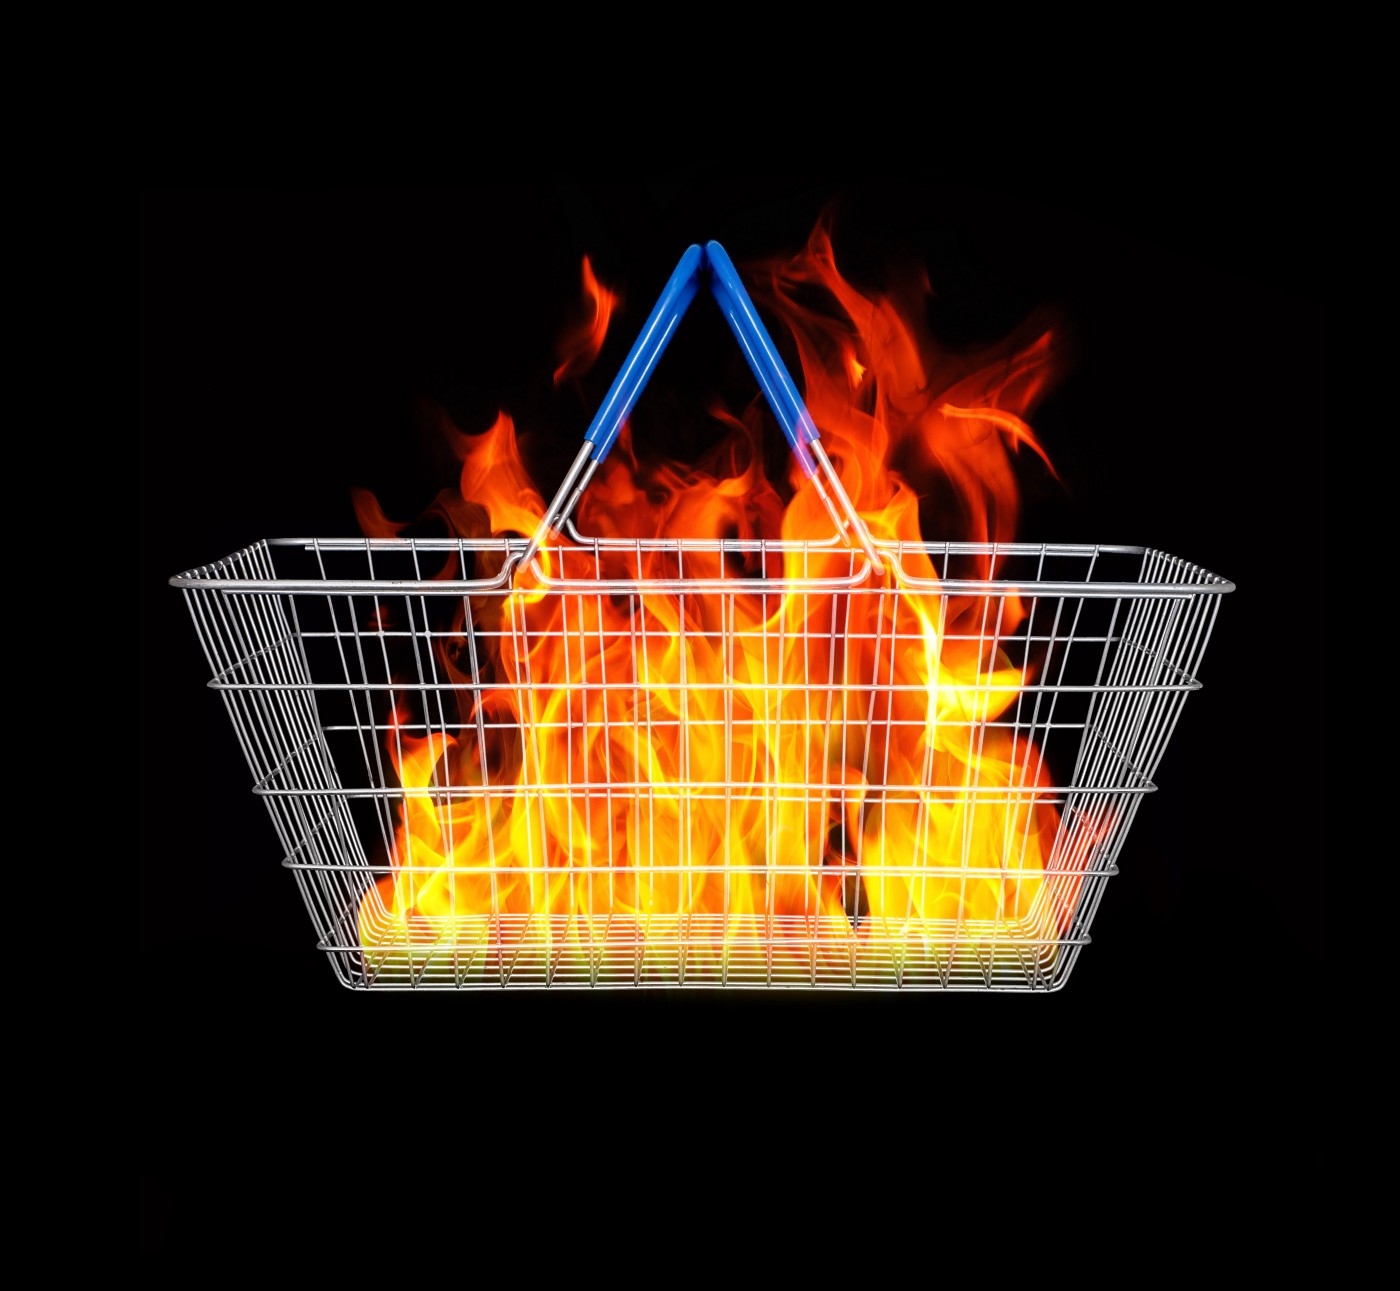 A wire shopping basket with flames inside against a black background.